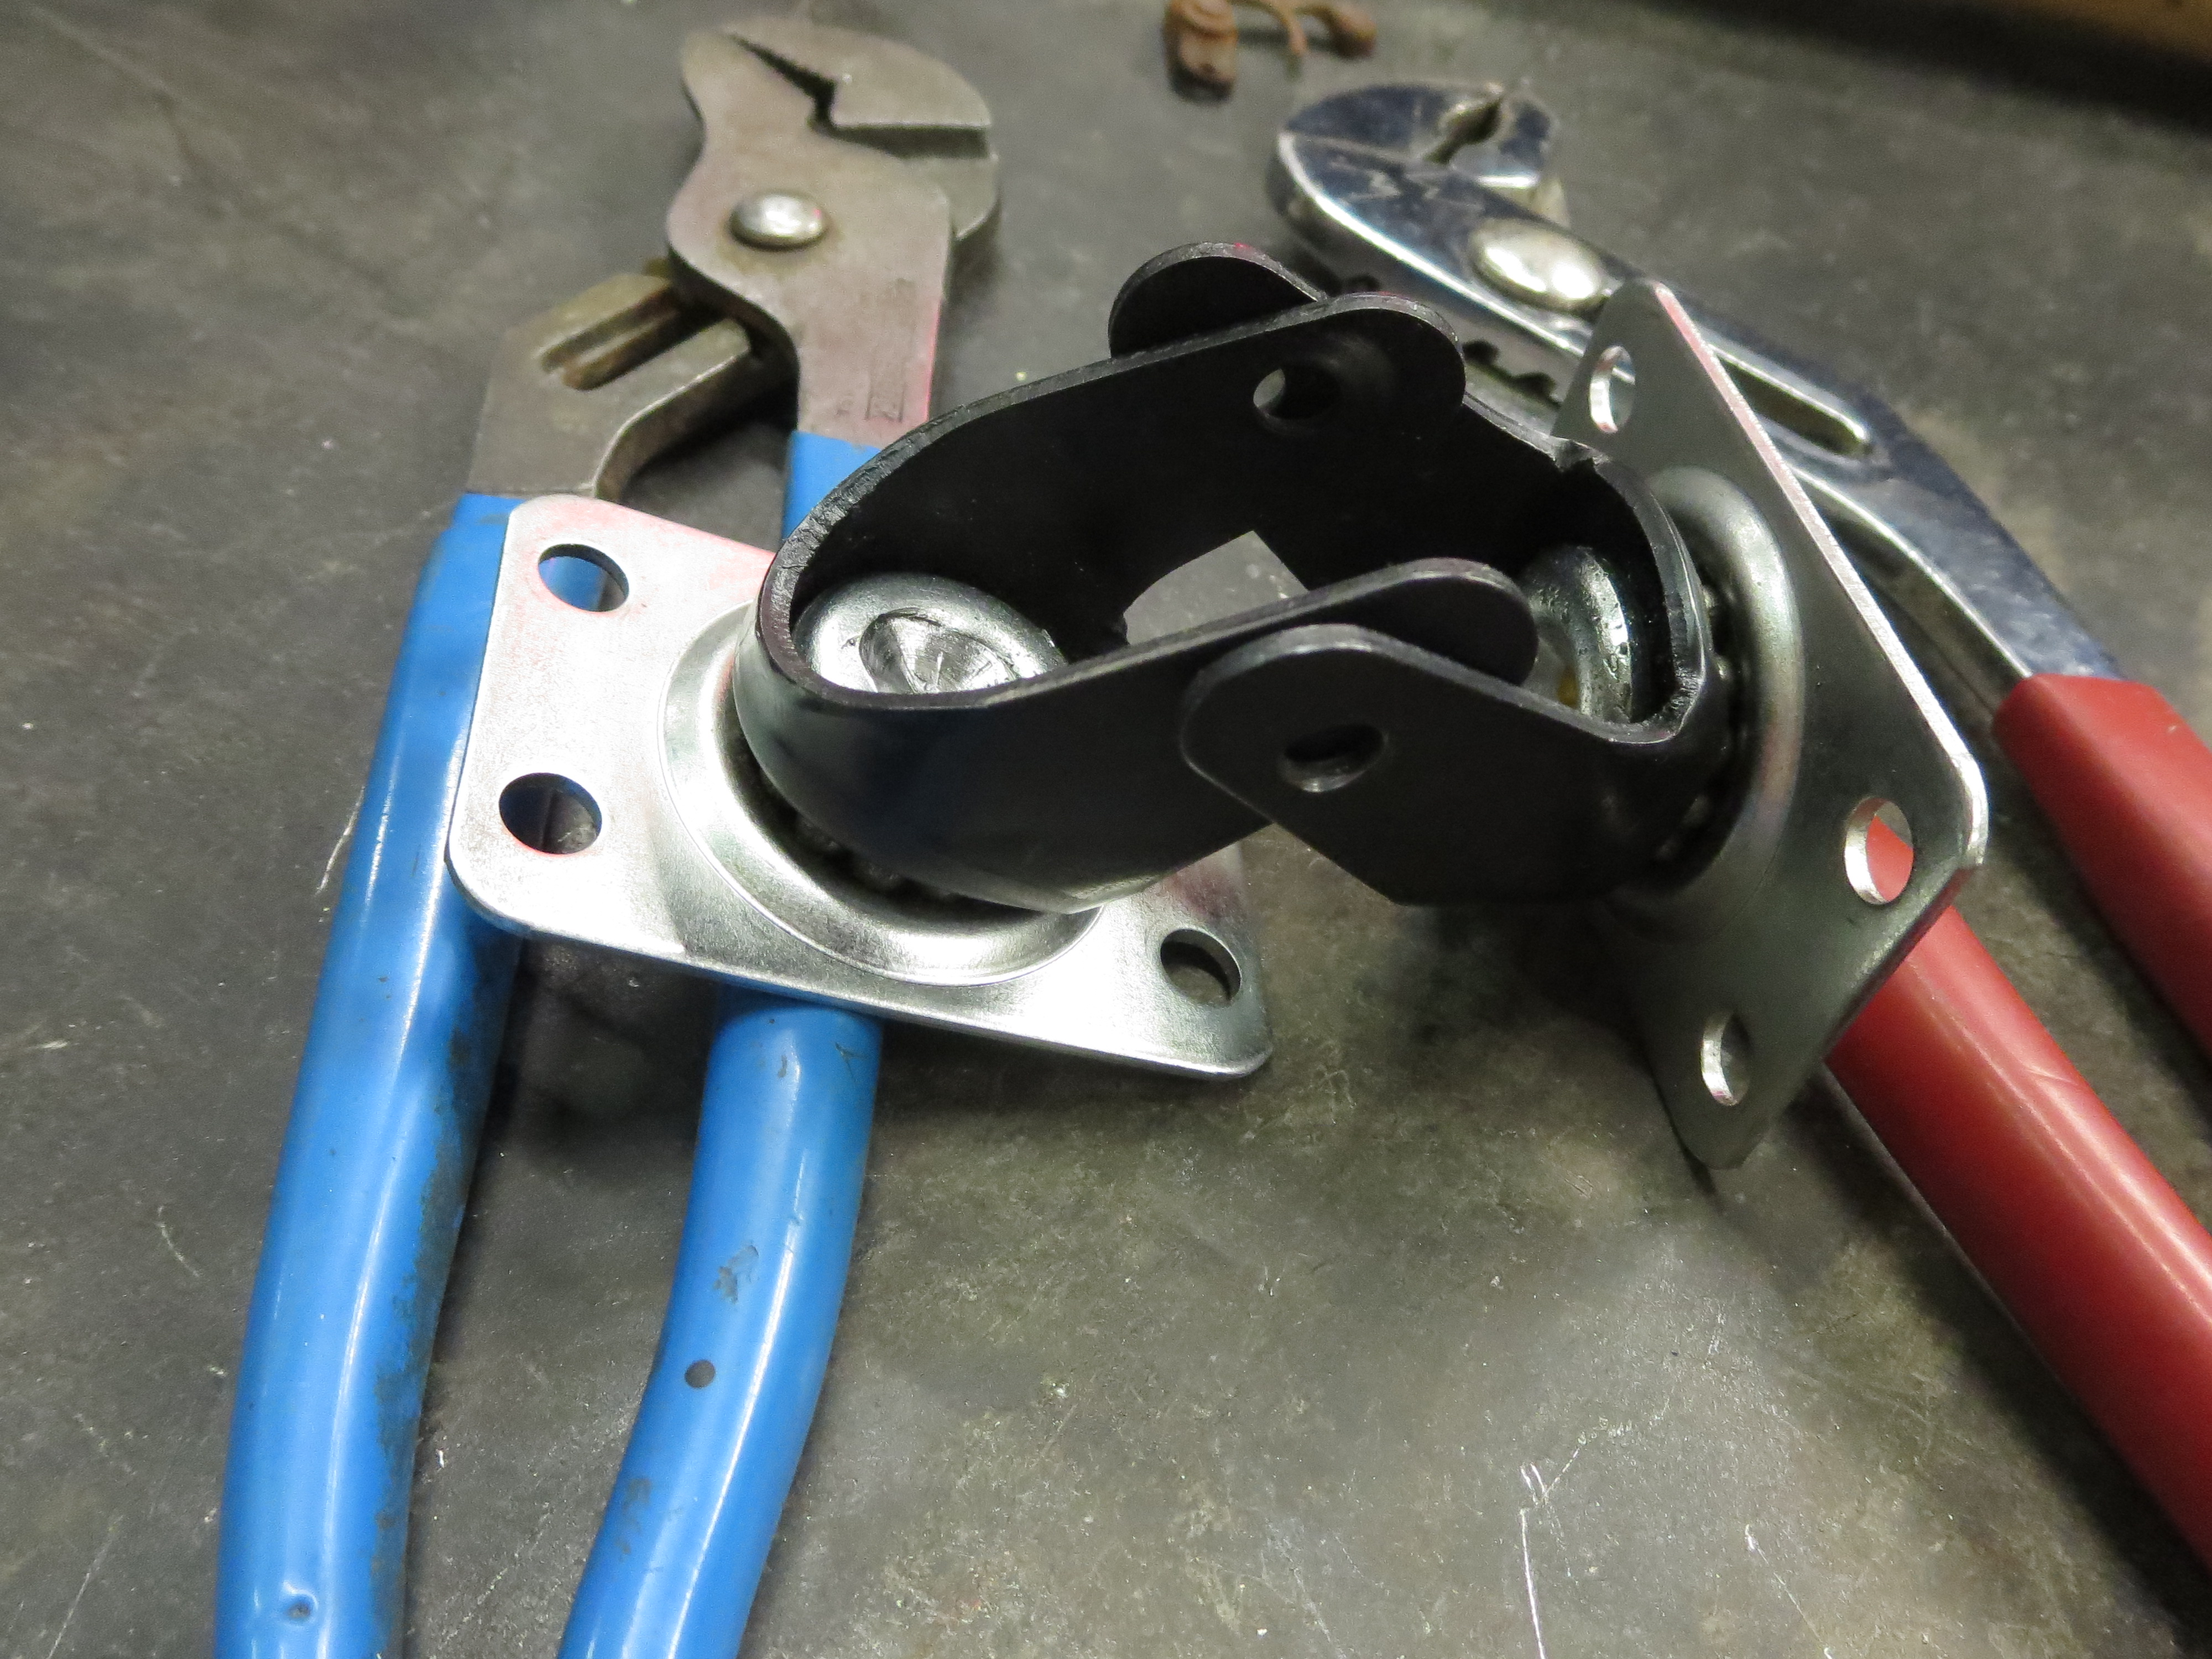 Picture of The Caster Hitch: Idea and Early Experiments